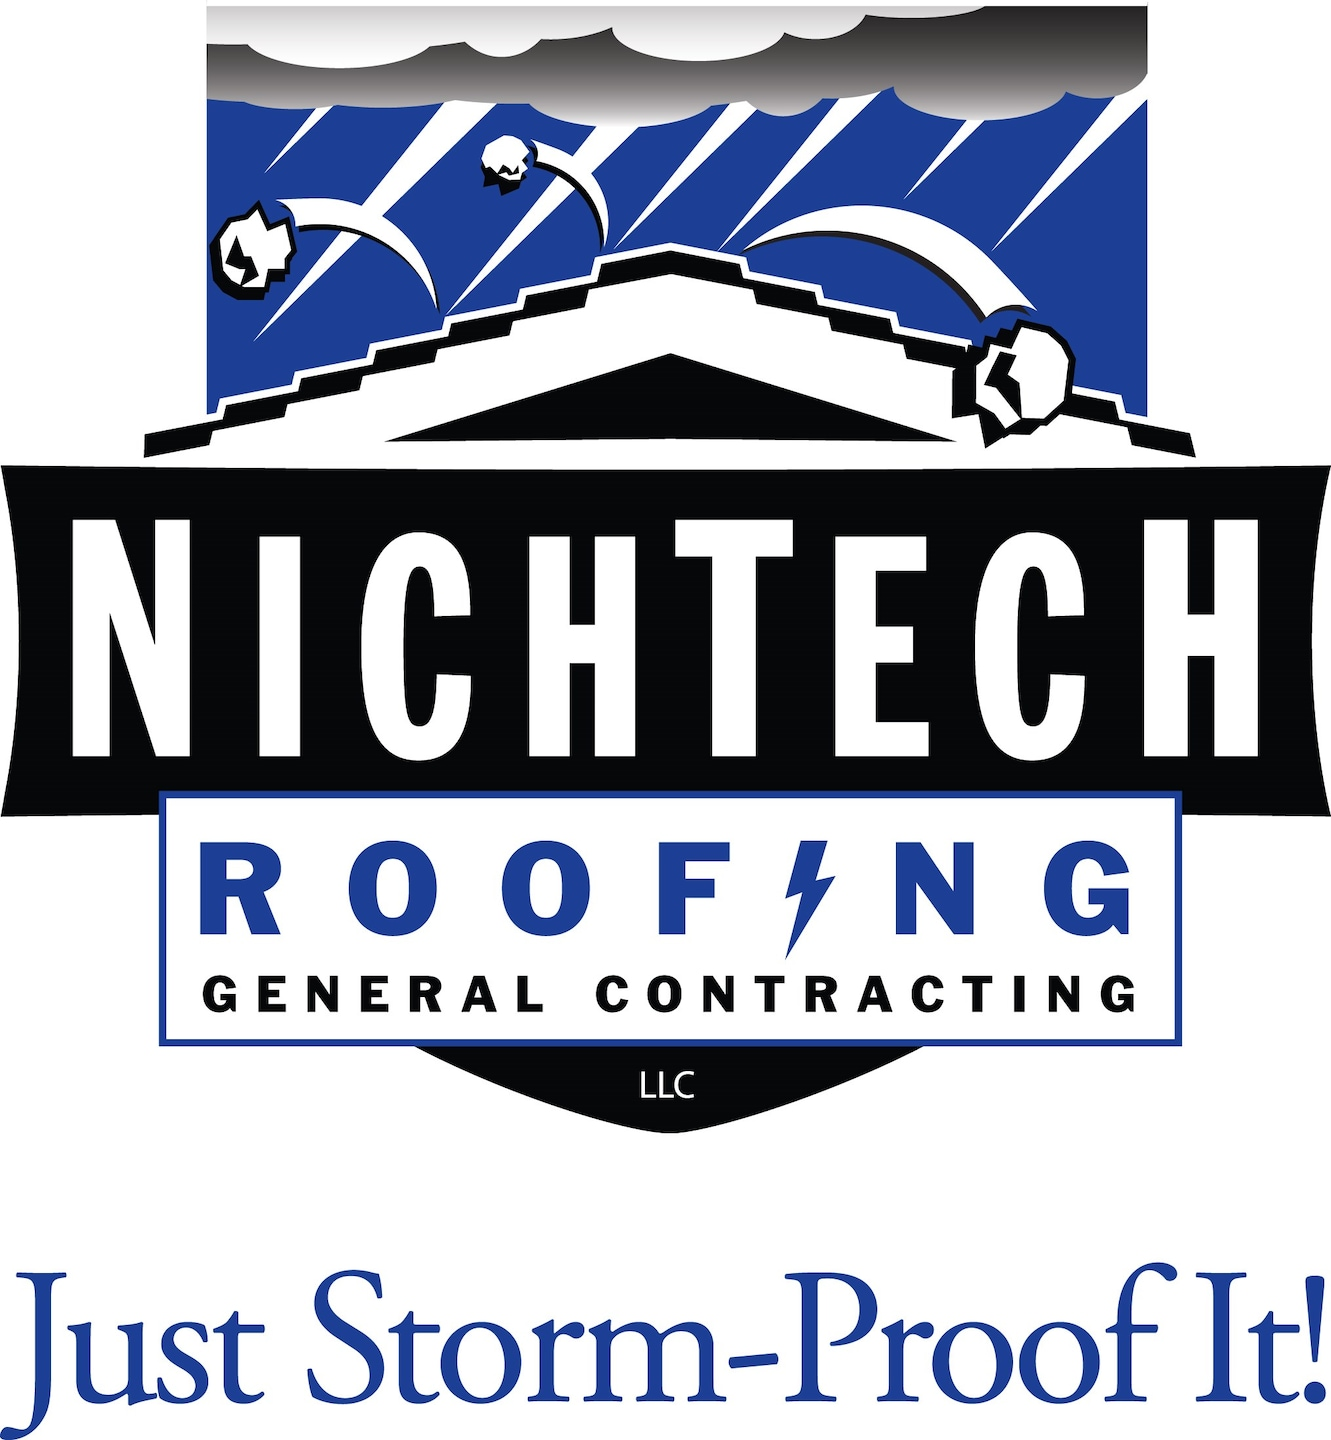 Nichtech Roofing & General Contracting LLC